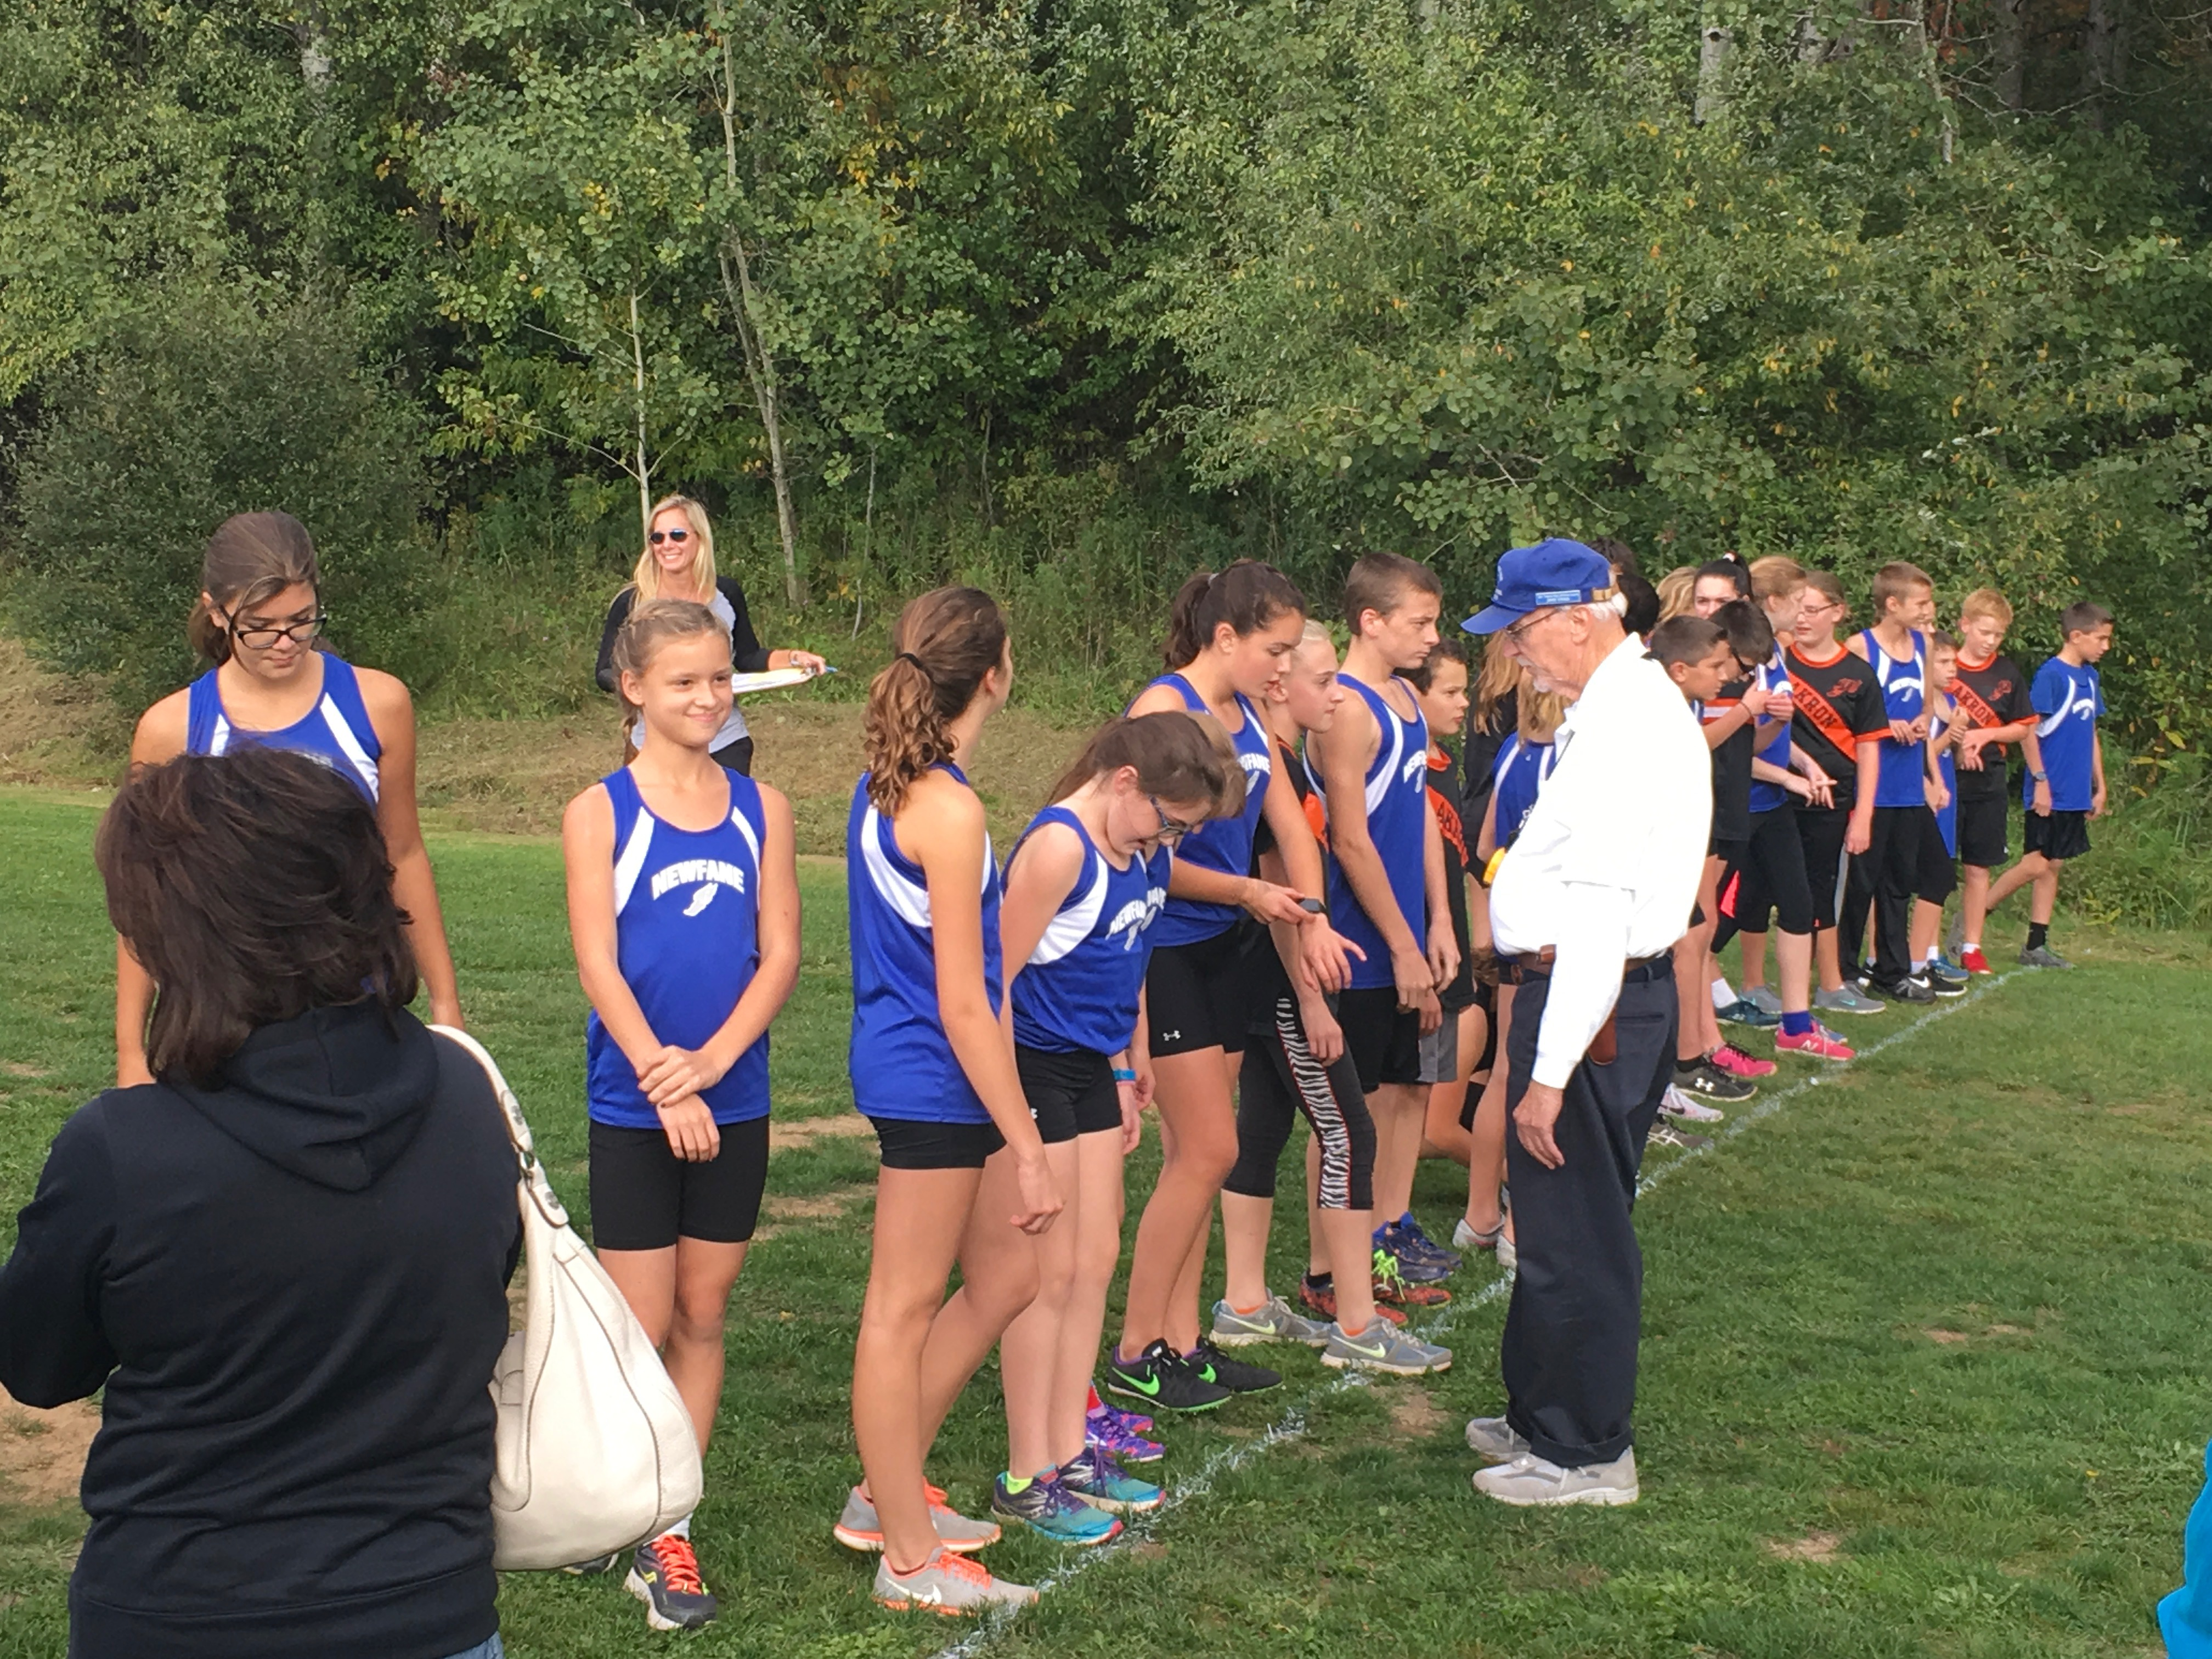 Cross country was one of the modified sports reintroduced by Newfane this year. (Photo provided by Newfane Central School District)